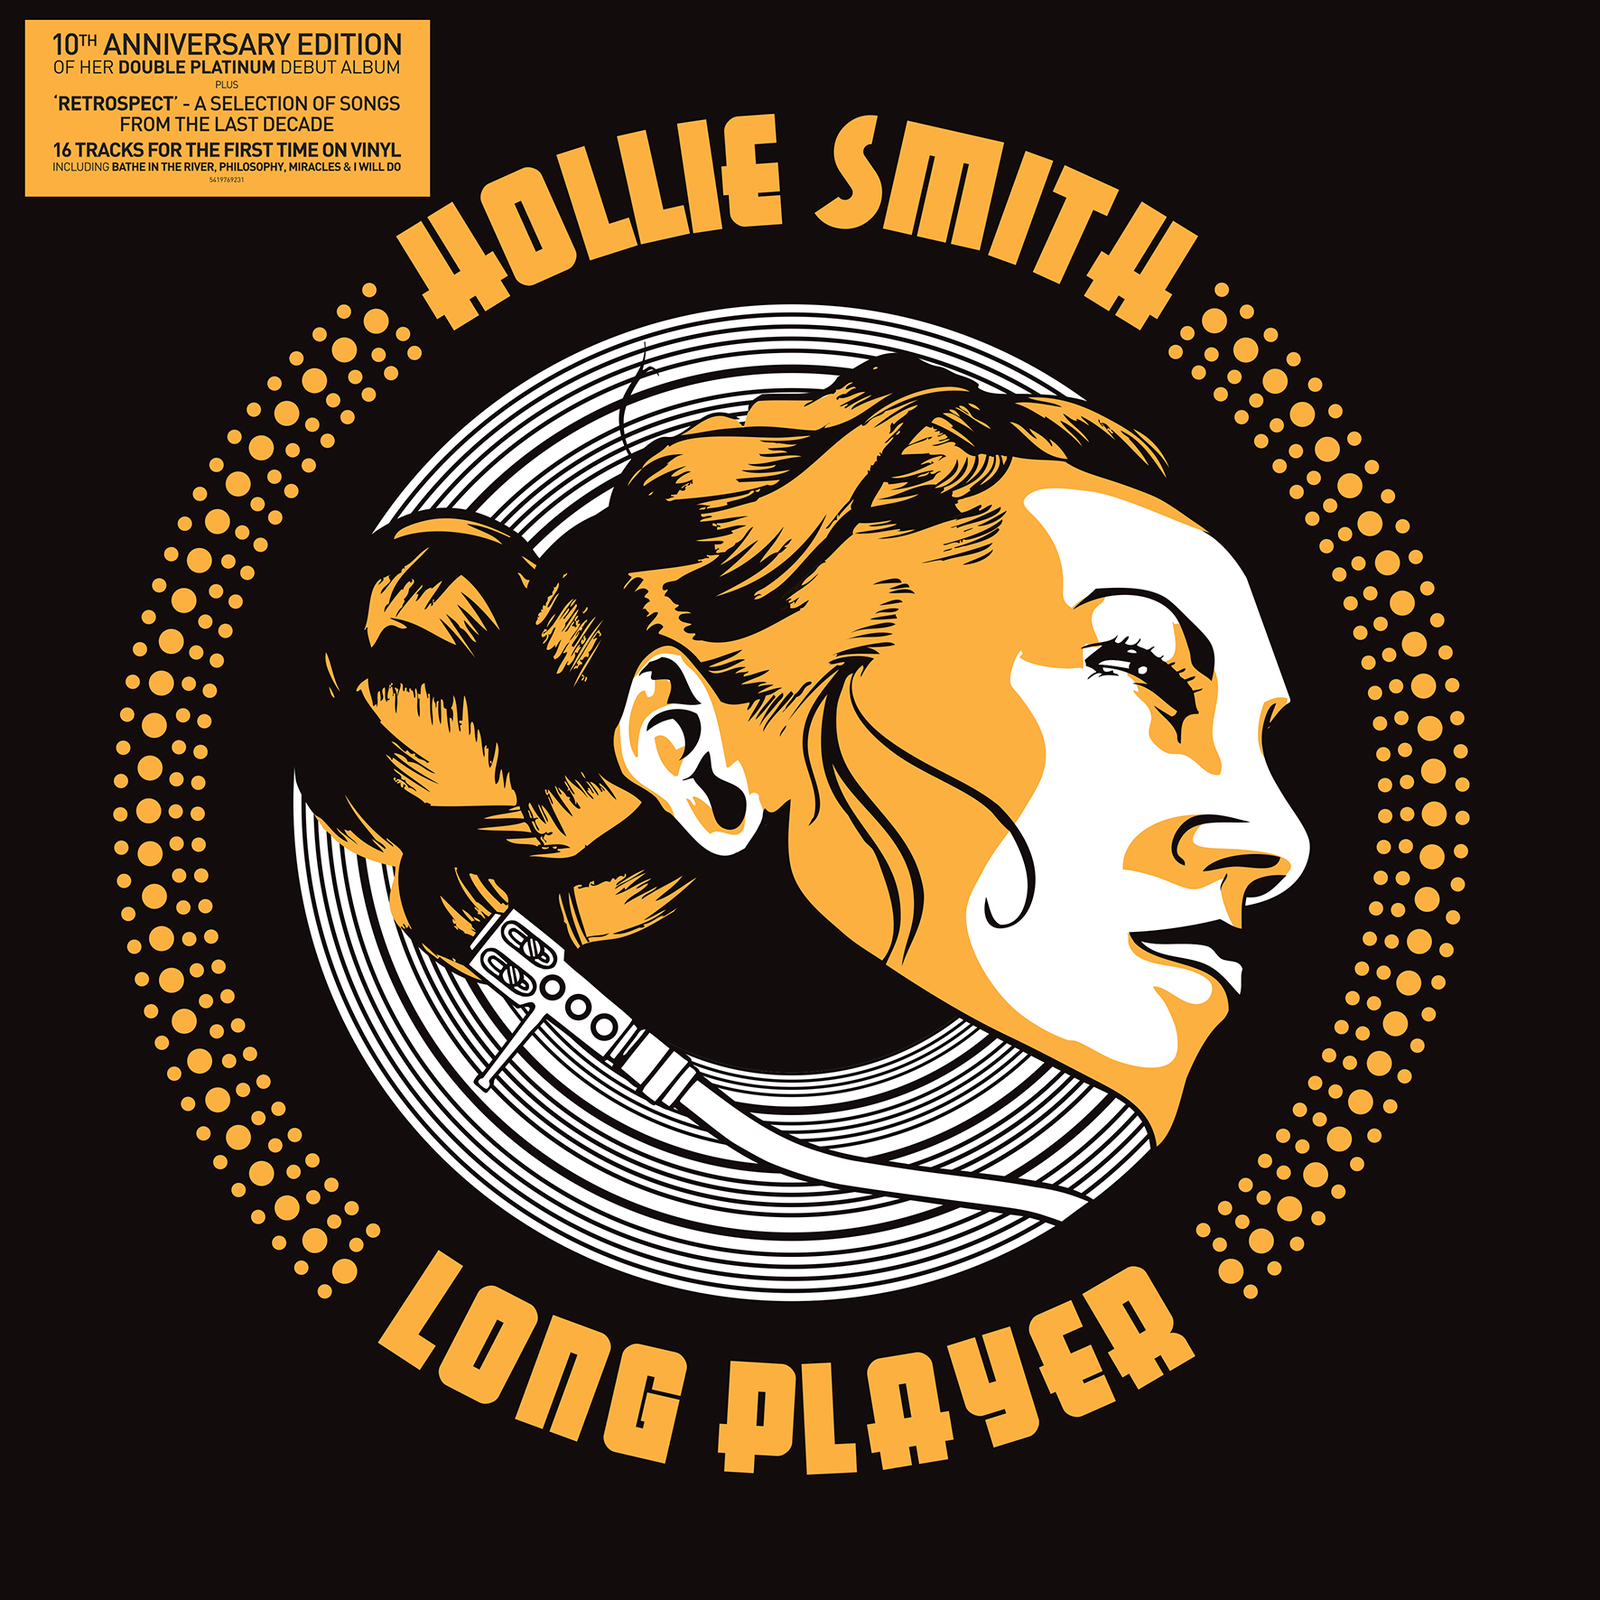 Long Player - 10th Anniversary Edition (2LP) by Hollie Smith image